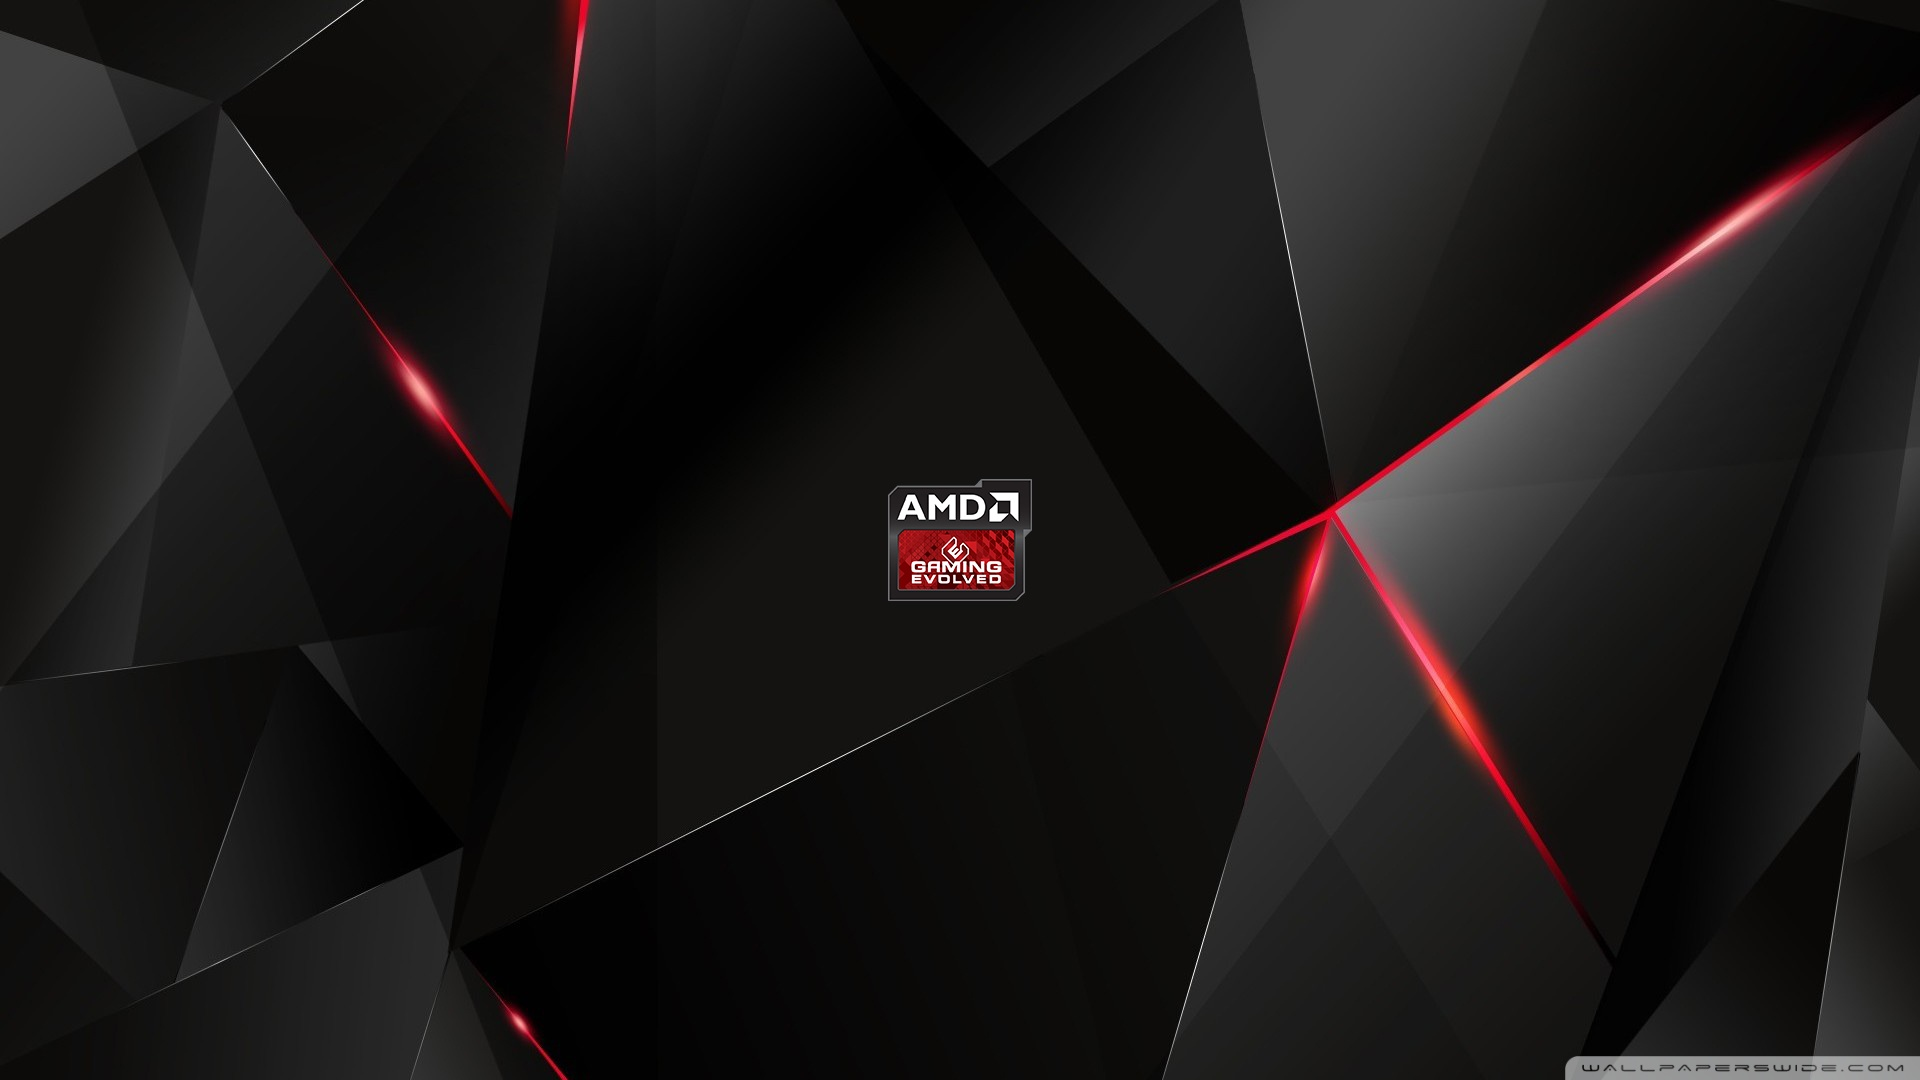 AMD Gaming Evolved HD desktop wallpaper : Widescreen : High